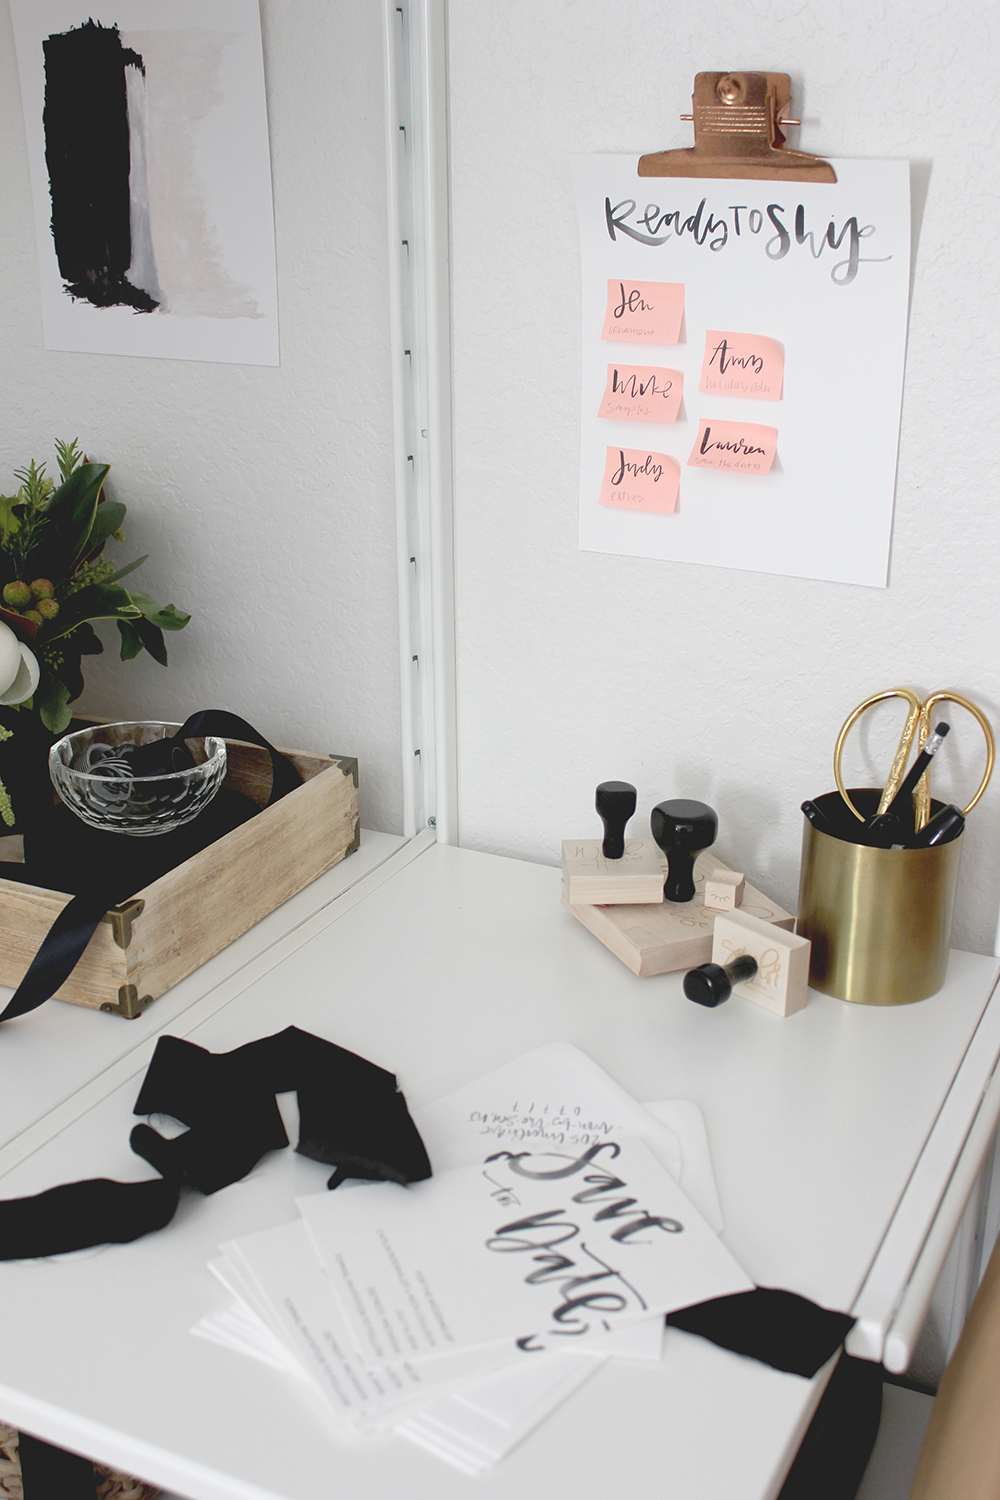 Small workspace created with ikea organization system | A Fabulous Fete